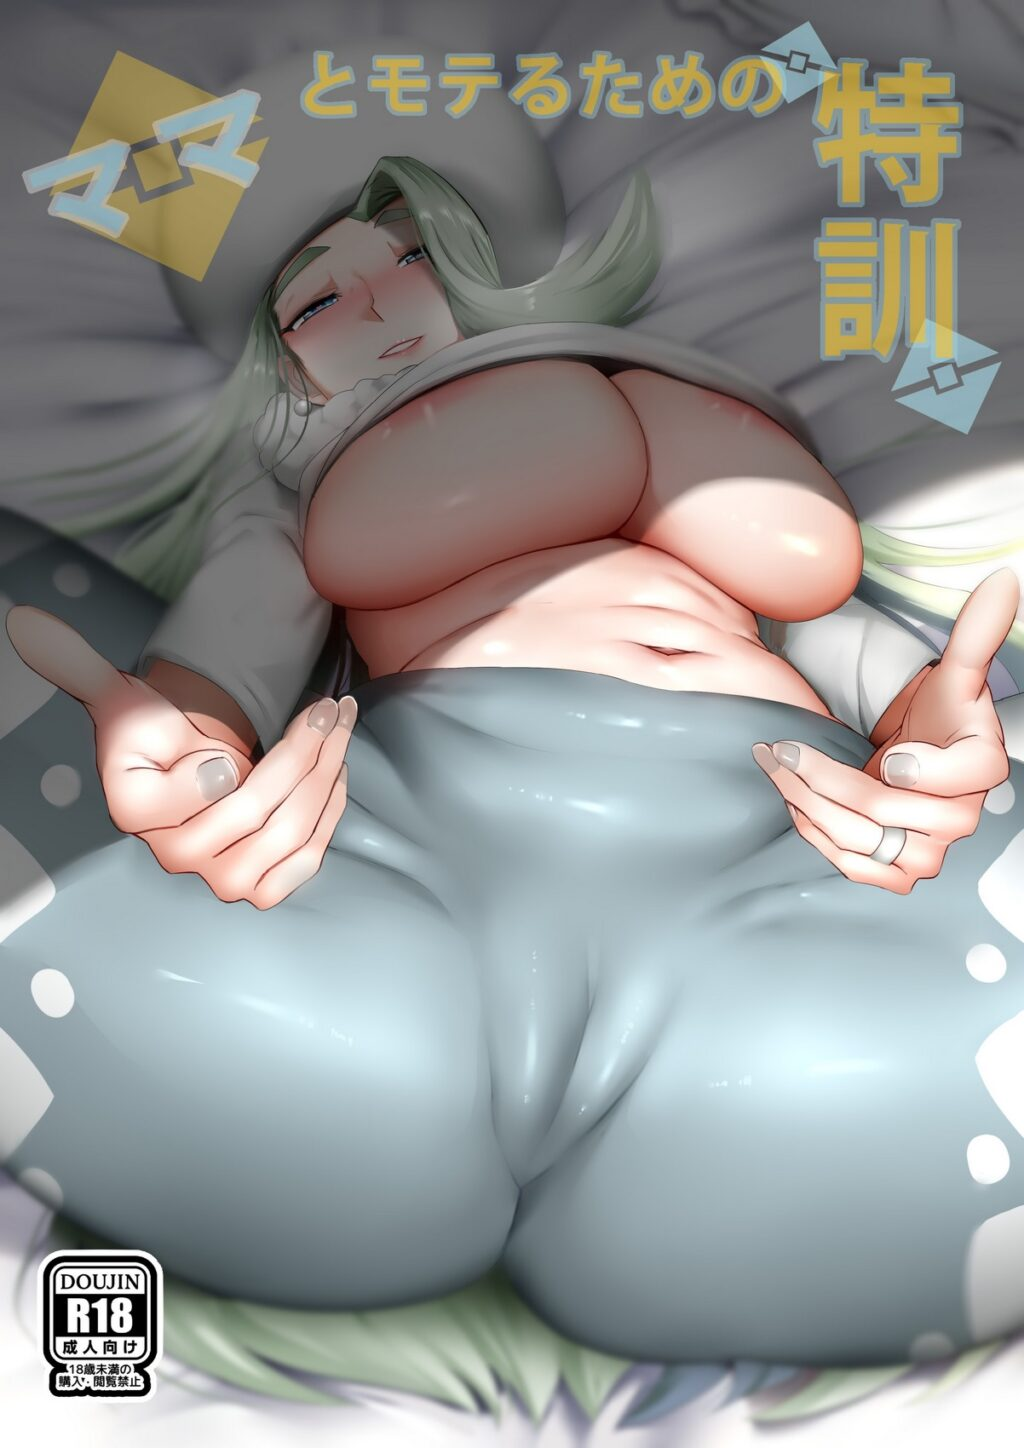 Pokémon-Sword-Shield-Galar-Region-Melony-big breasts-big-dick-creampie-incest-family-Porn-Comic-ginhaha-milf-older-mother-fucks-her-young-son-Gordie-Moma-sex-seduced-Mamas-Training-Región-de-Galar-pechos-grandes-polla-grande-corrida-interna-incesto-familia-ginhaha-milf-madre-mayor-se-folla-a-su-joven-hijo-porno-cómico-Moma-sex-seducido-entrenamiento-de-mamas